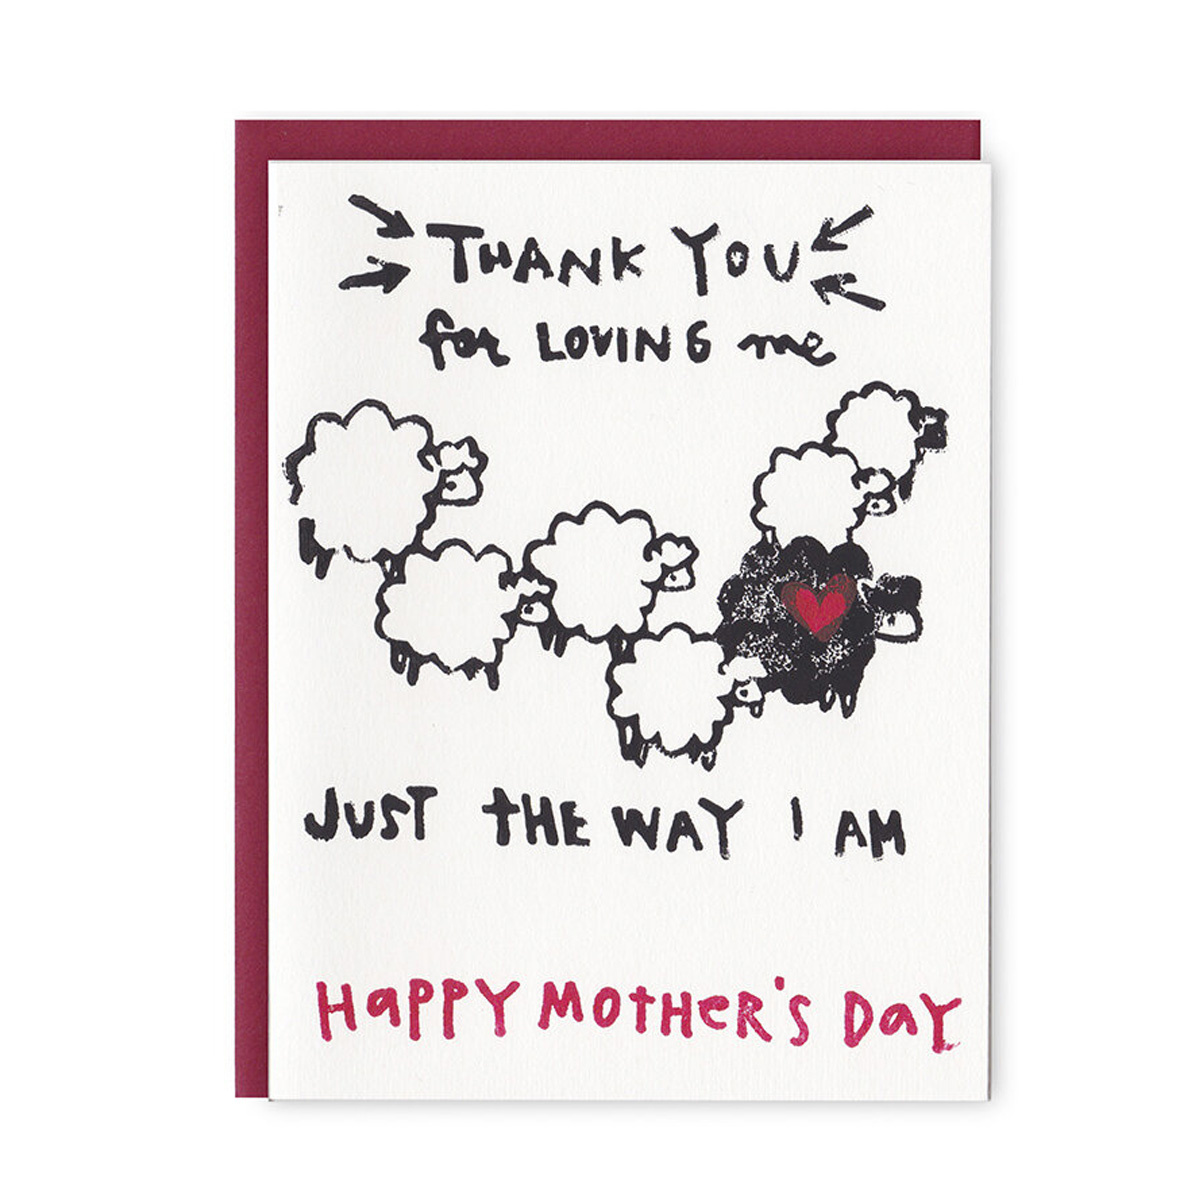 Happy Mother's Day - Thank You-1